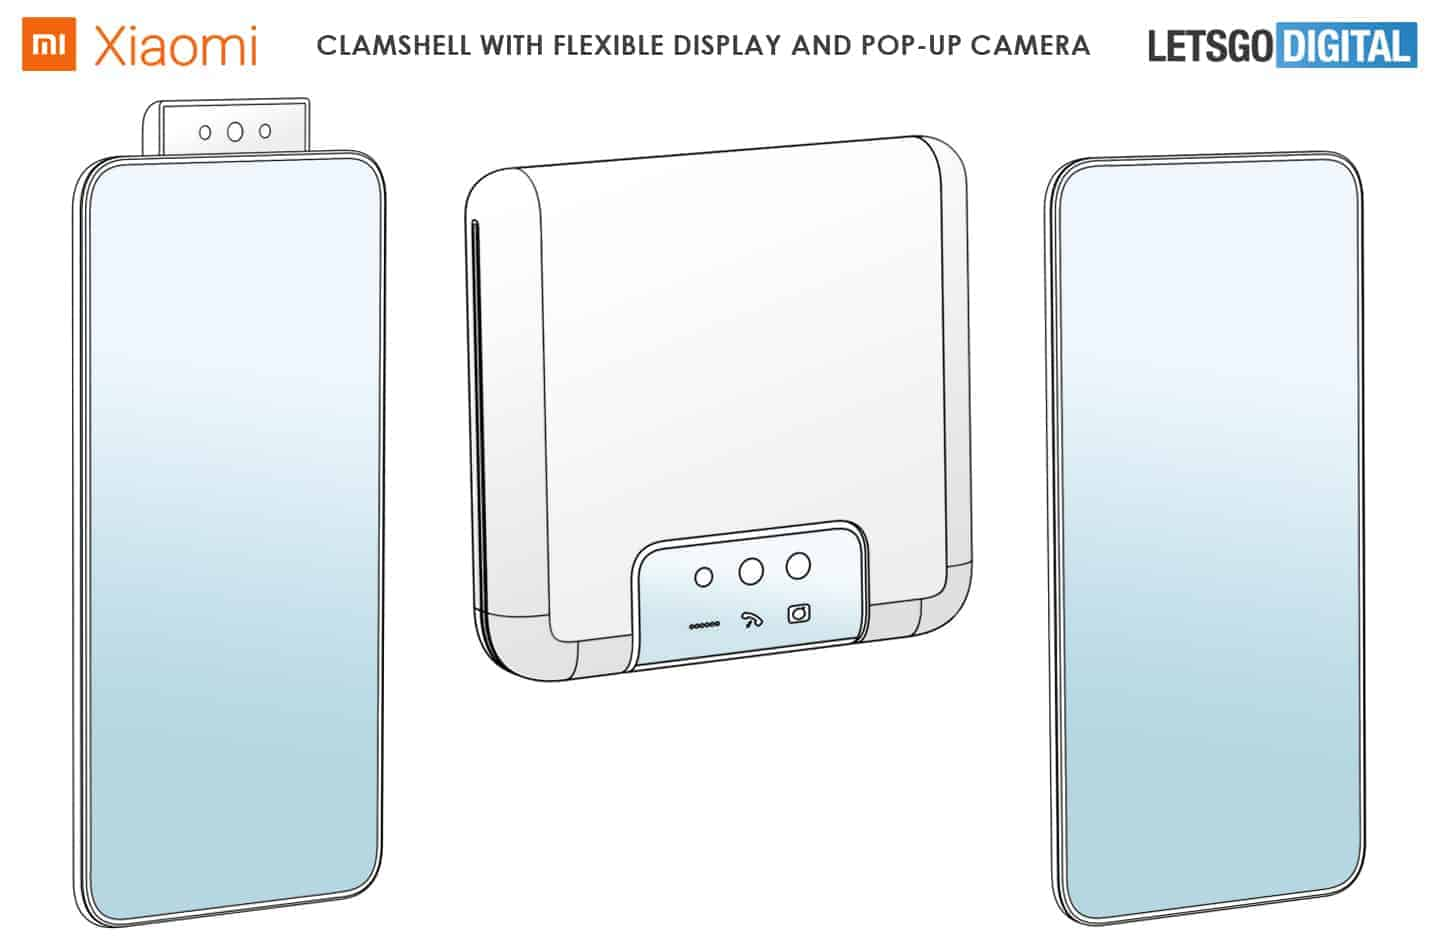 Xiaomi clamshell foldable with pop up camera image 1